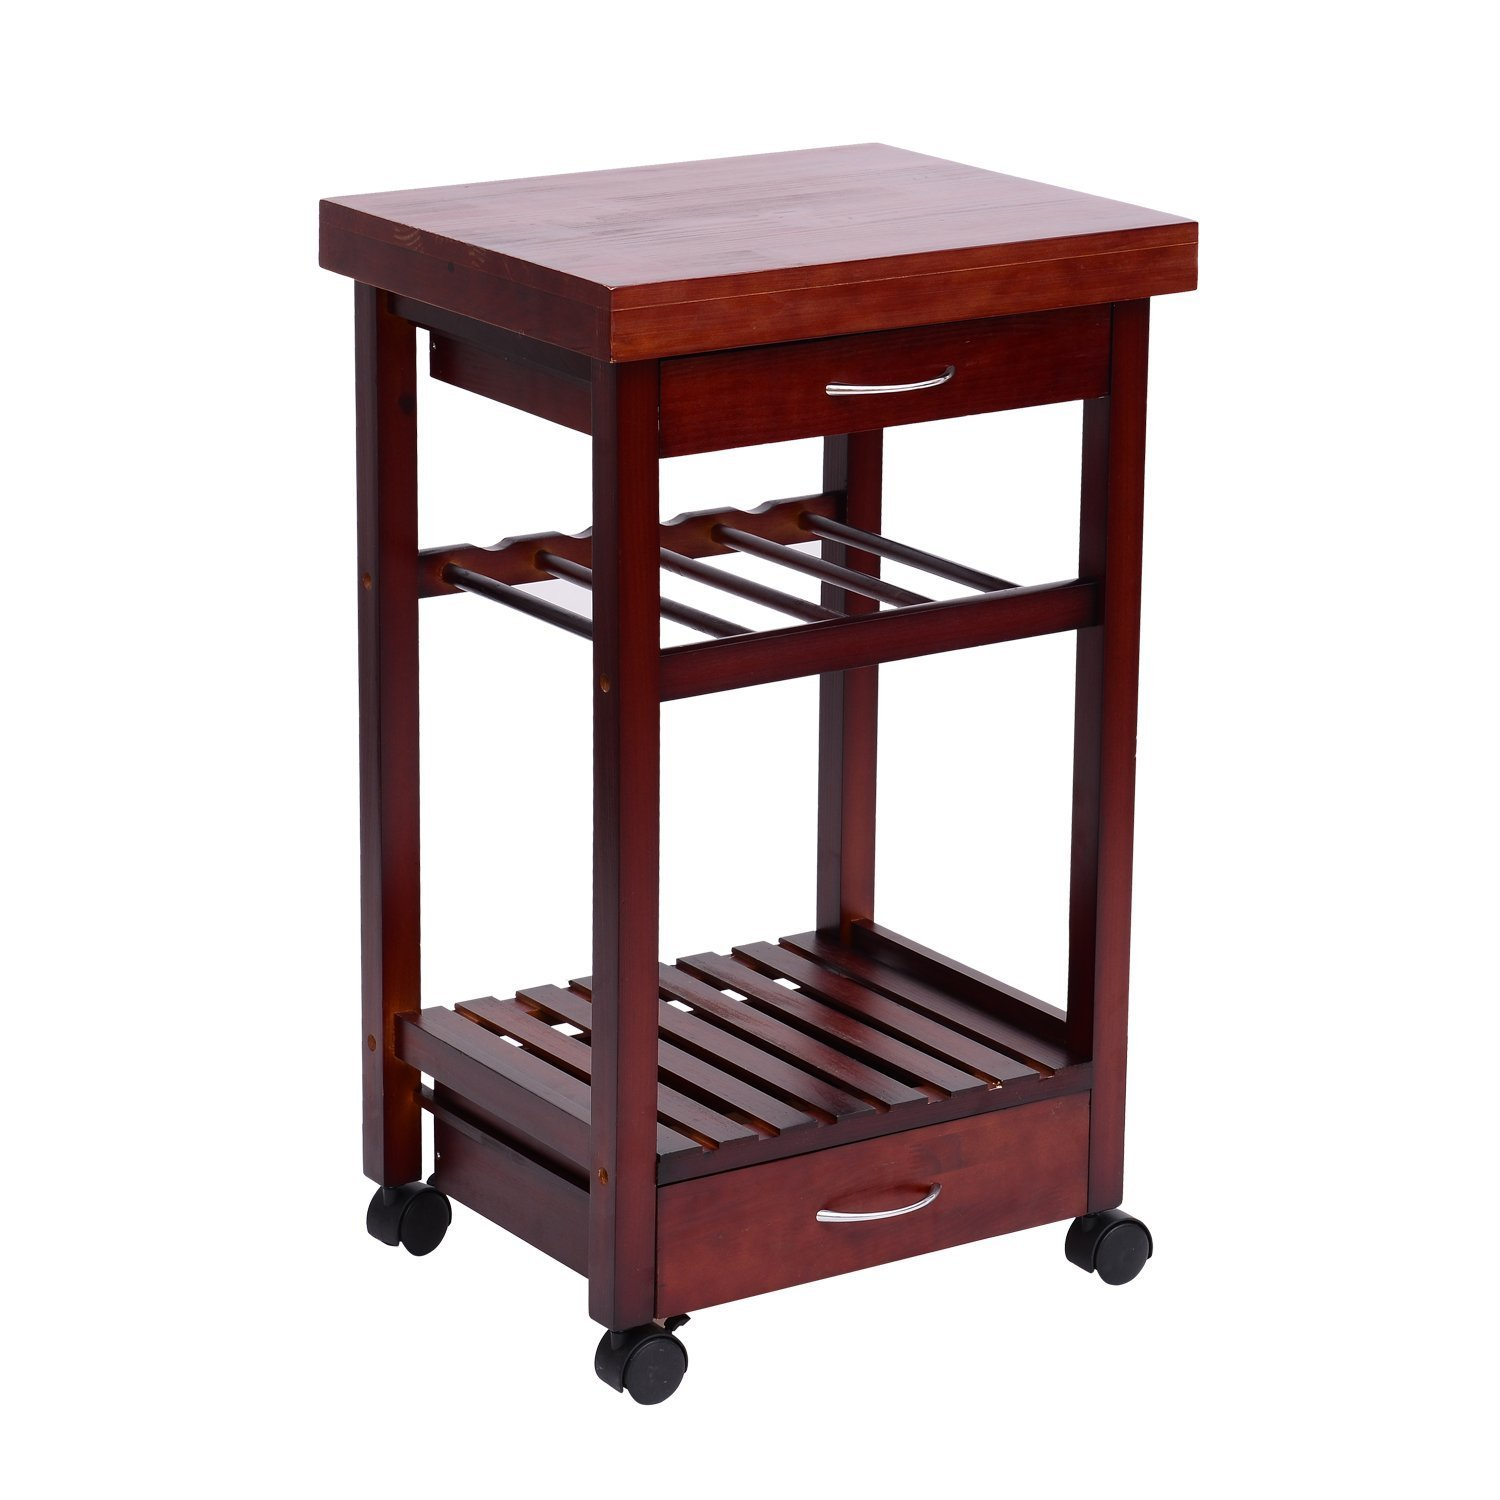 HOMCOM 32'' Rolling Wooden Storage Cart Kitchen Trolley w/Drawers and Wine Rack